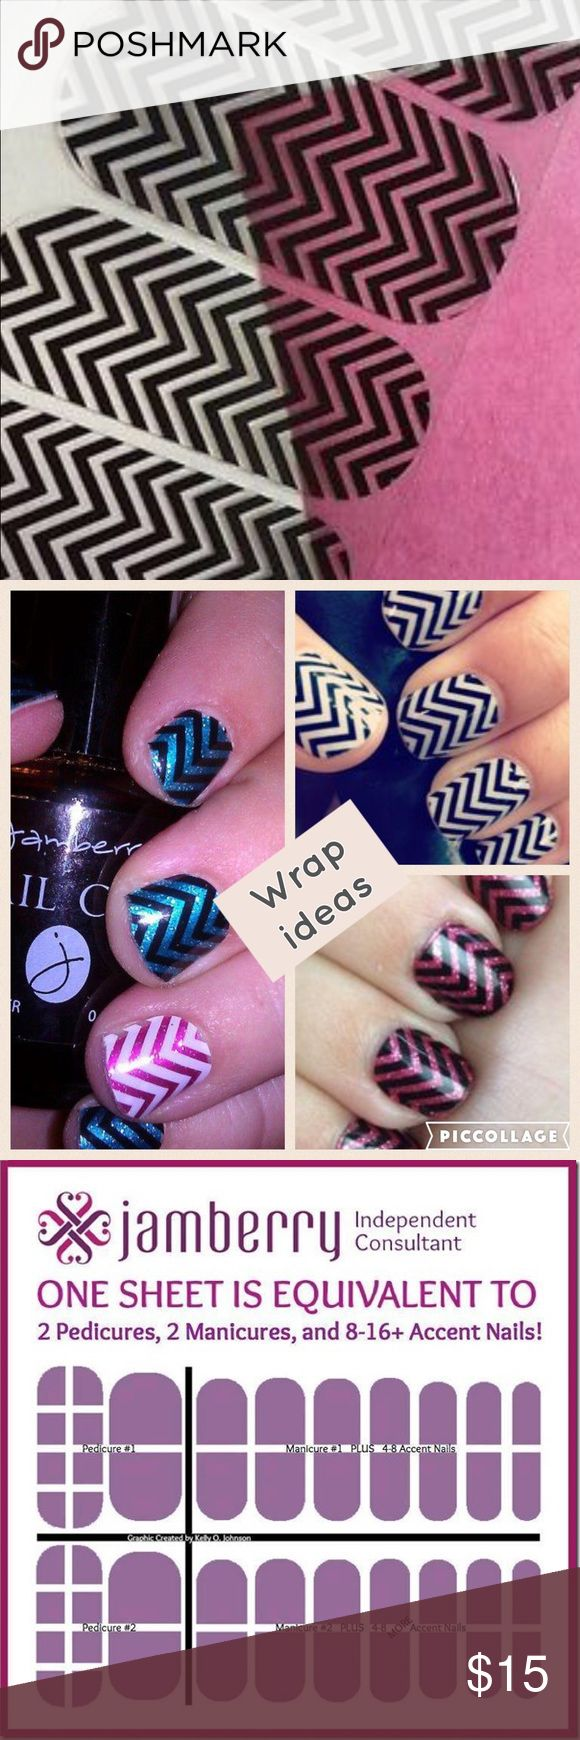 RETIRED WRAP: Jamberry BLACK CLEAR CHEVRON RETIRED BLACK CLEAR CHEVERON  4 sale in full sheet full sheet provides 2 pedicures 2 Manicures & 8-16 accents WANT half sheet comment below every Jamberry Bundle purchased u will receive a free Jamberry gift. wraps r made w/durable materials no smudges & streaks are can last for up to 2 week on fingernails & 4 weeks on toes customize, pair, & layer nail wraps 2 create a look that's U from the comfort of your home Non-toxic 5-Free Dibutyl Phthalate…